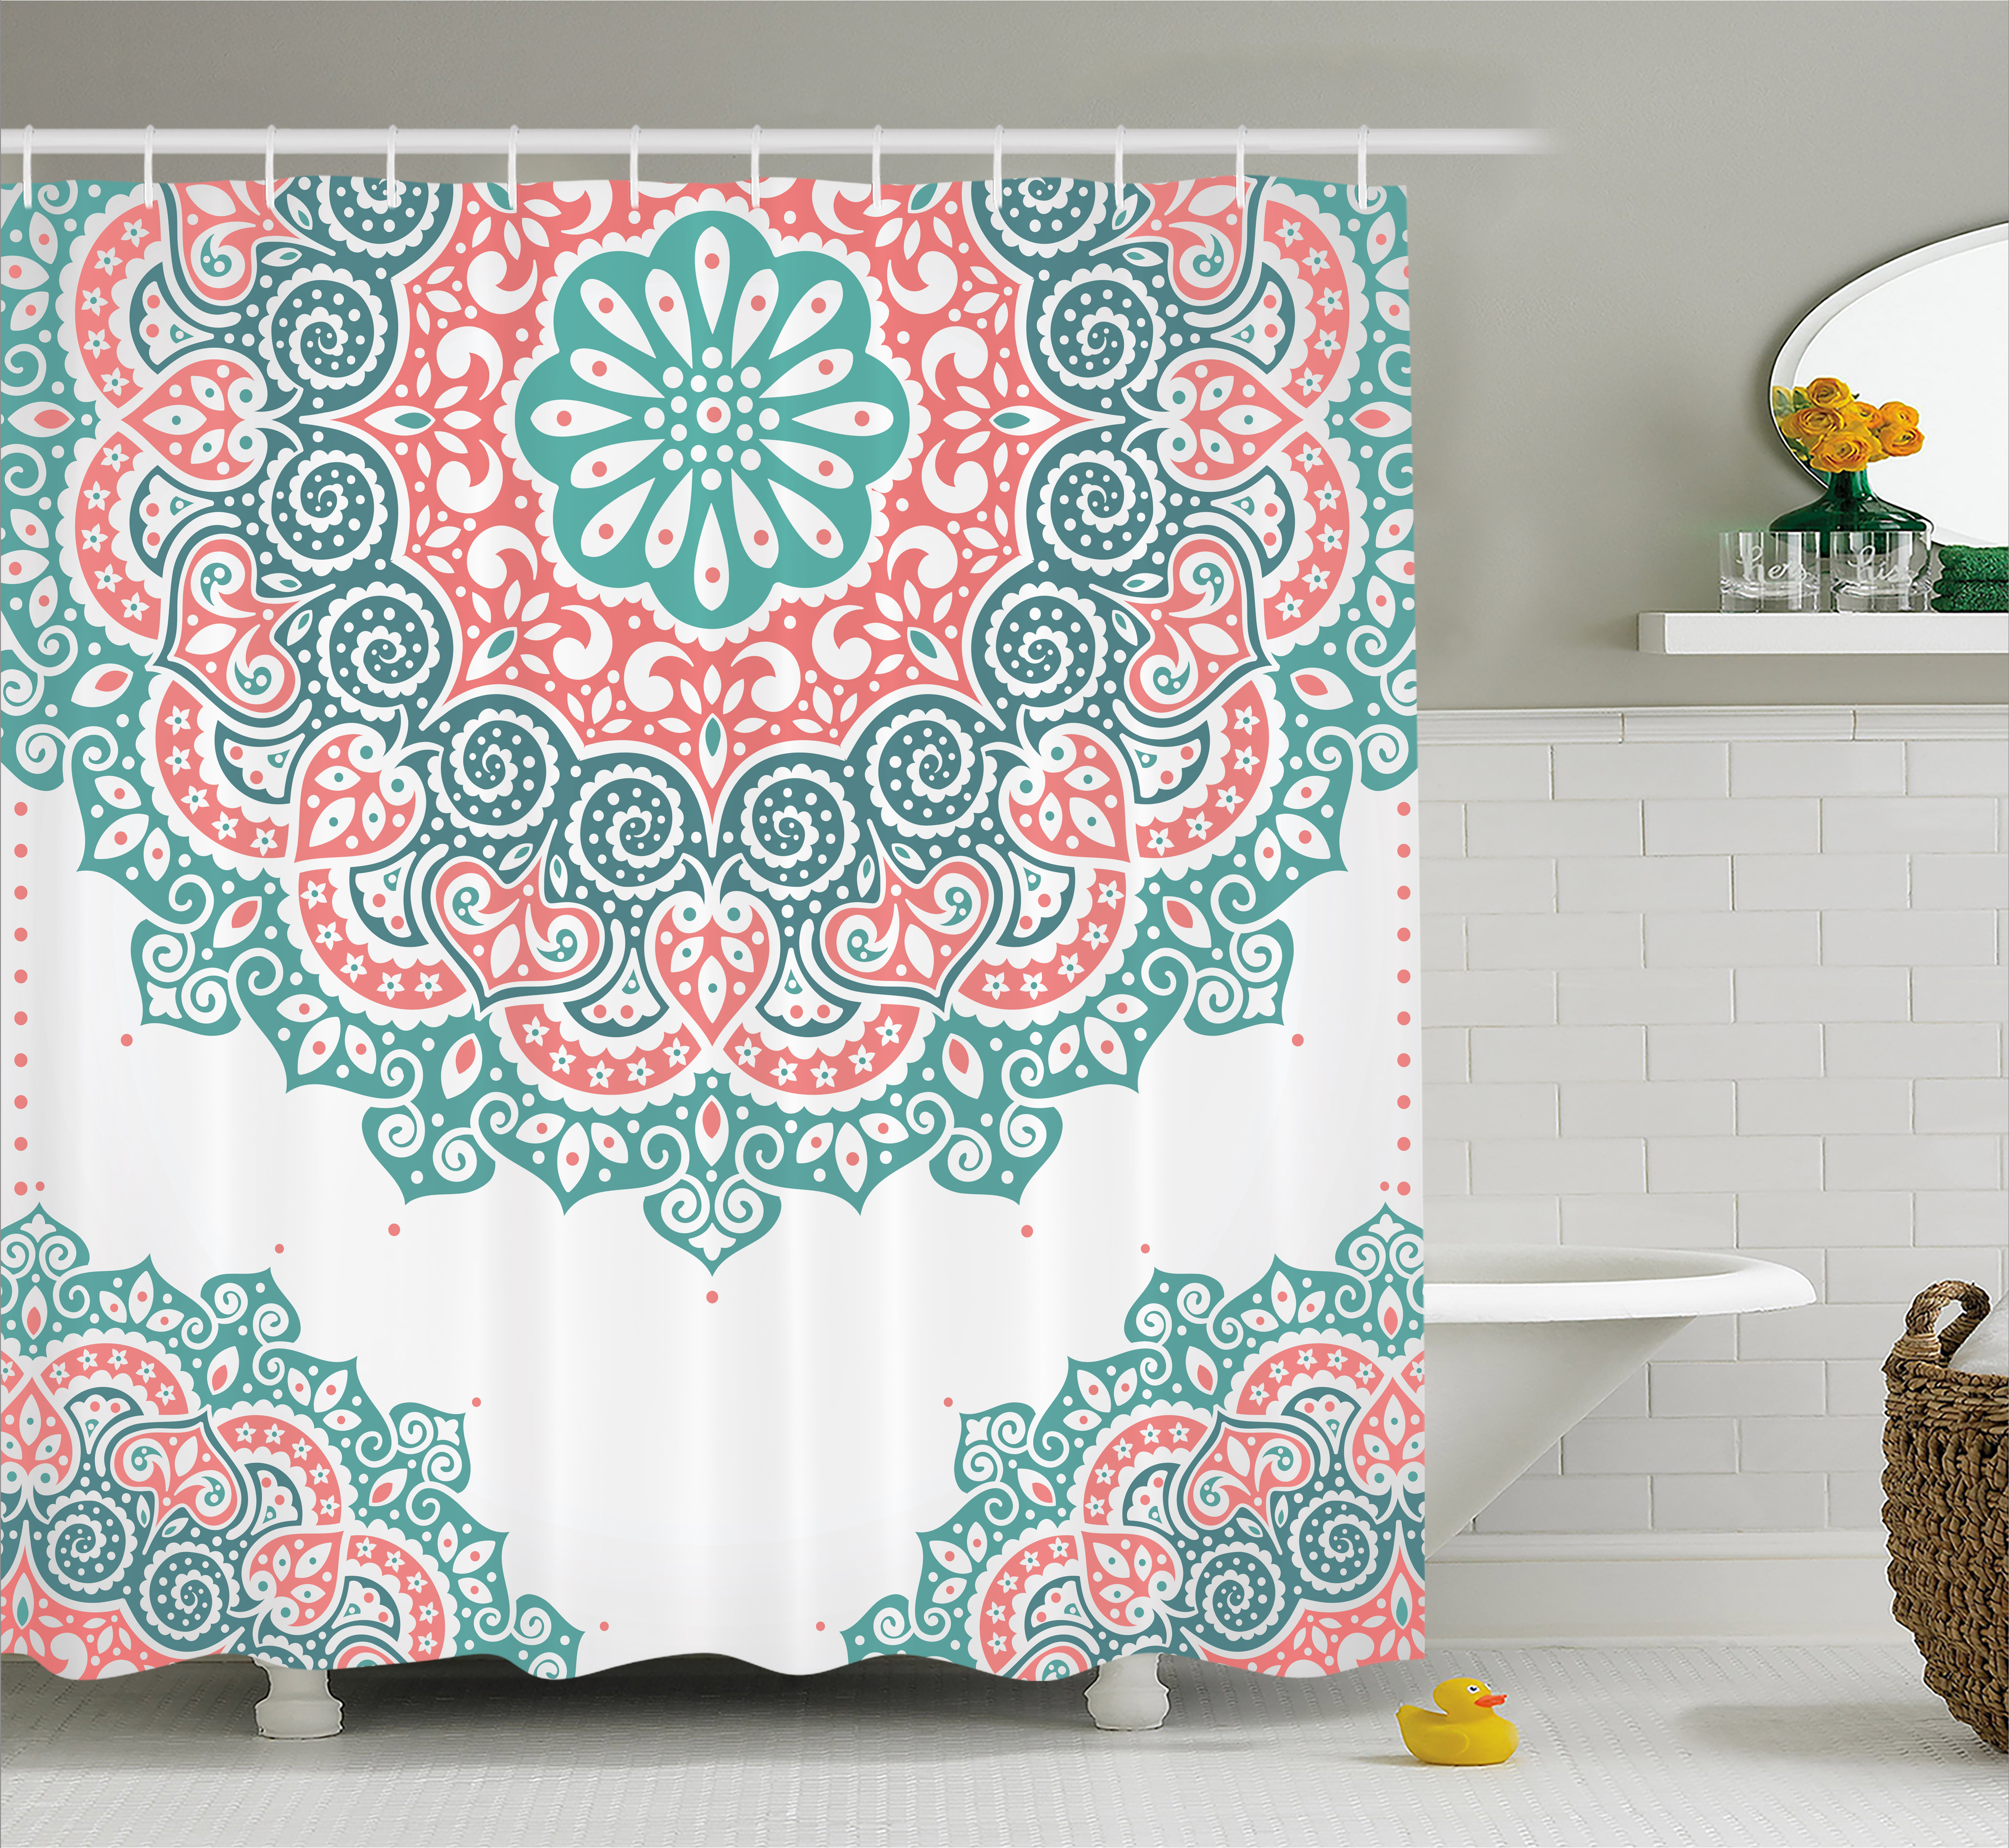 Henna Shower Curtain, Soft Colored Mandala South Asian Culture Inspired Ethnic Style Floral Image, Fabric Bathroom Set with Hooks, 69W X 70L Inches, Turquoise Coral Teal, by Ambesonne